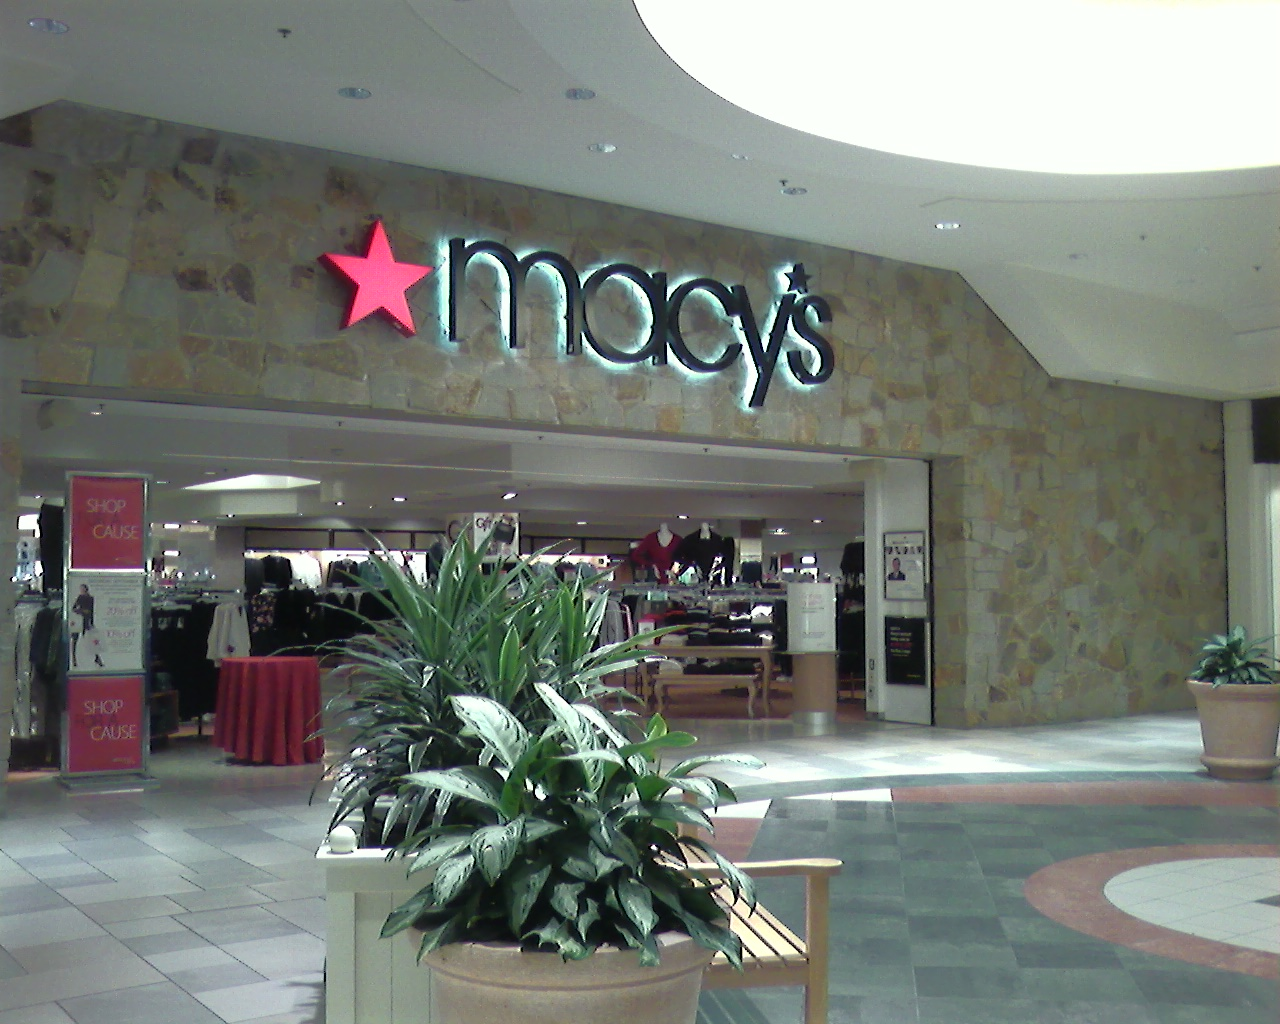 Macy's at Fox Run Mall in Newington, New Hampshire